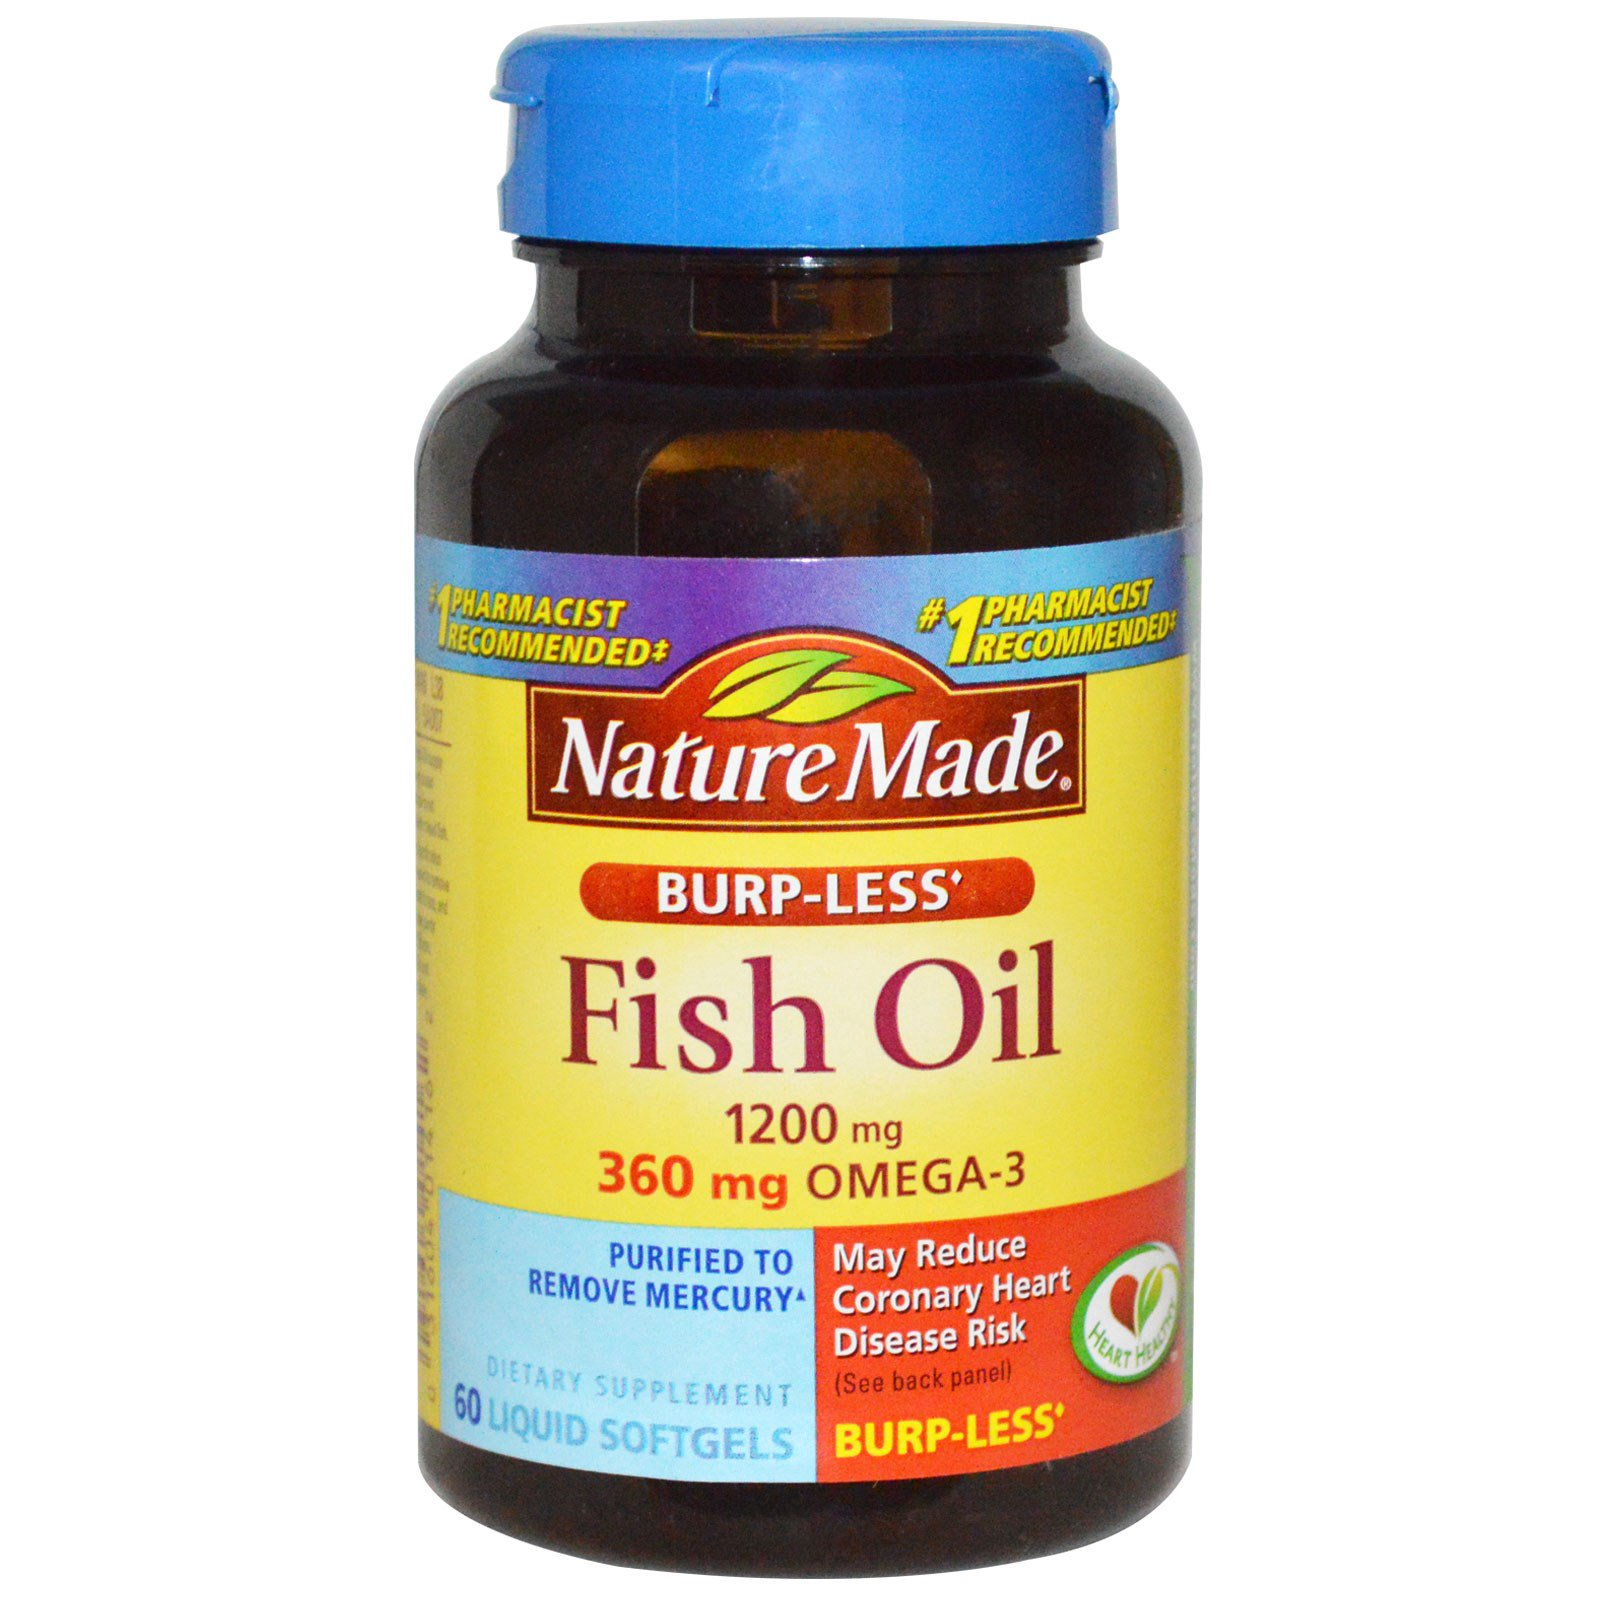 Nature made fish oil omega 3 burp less 1200 mg 60 for Fish oil pills